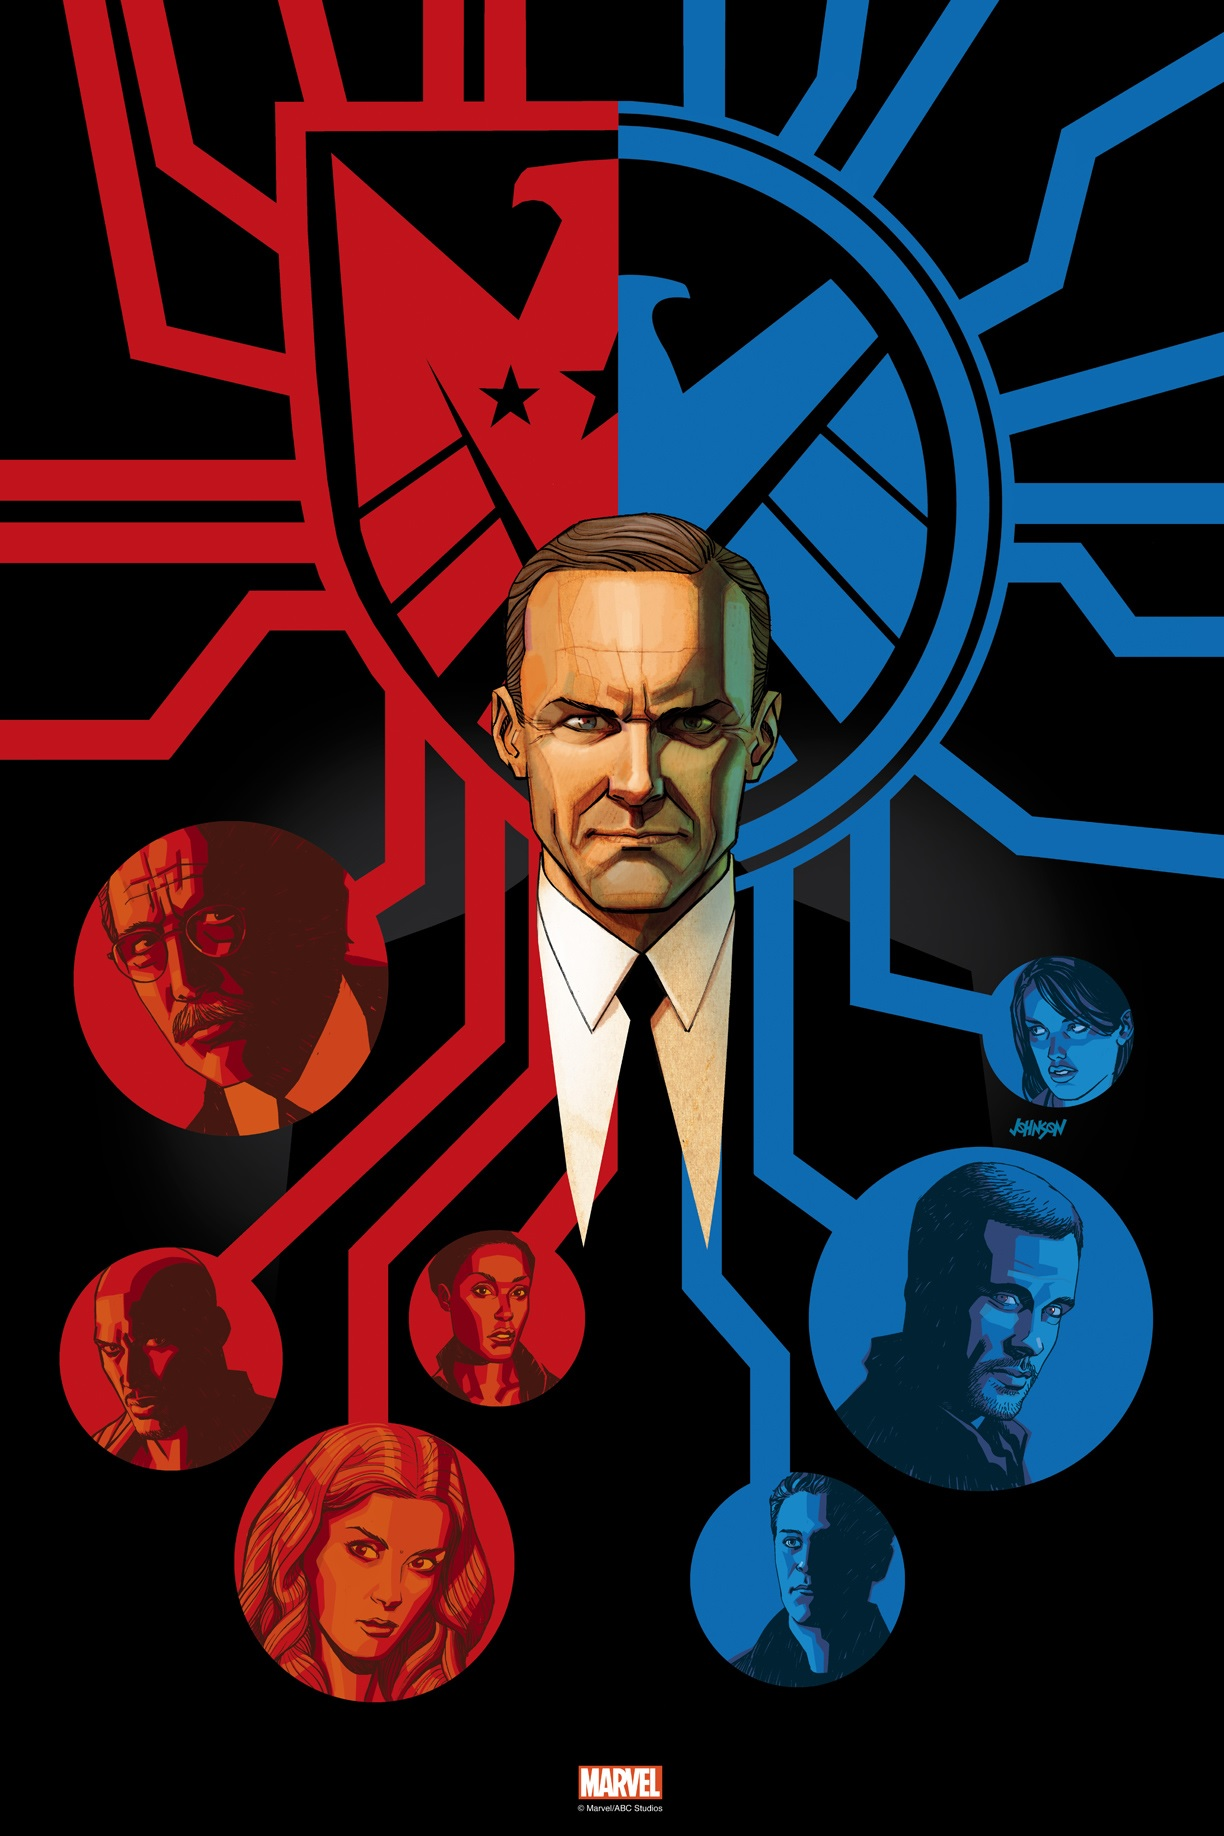 Marvel's Agents of S.H.I.E.L.D. Season 2 16